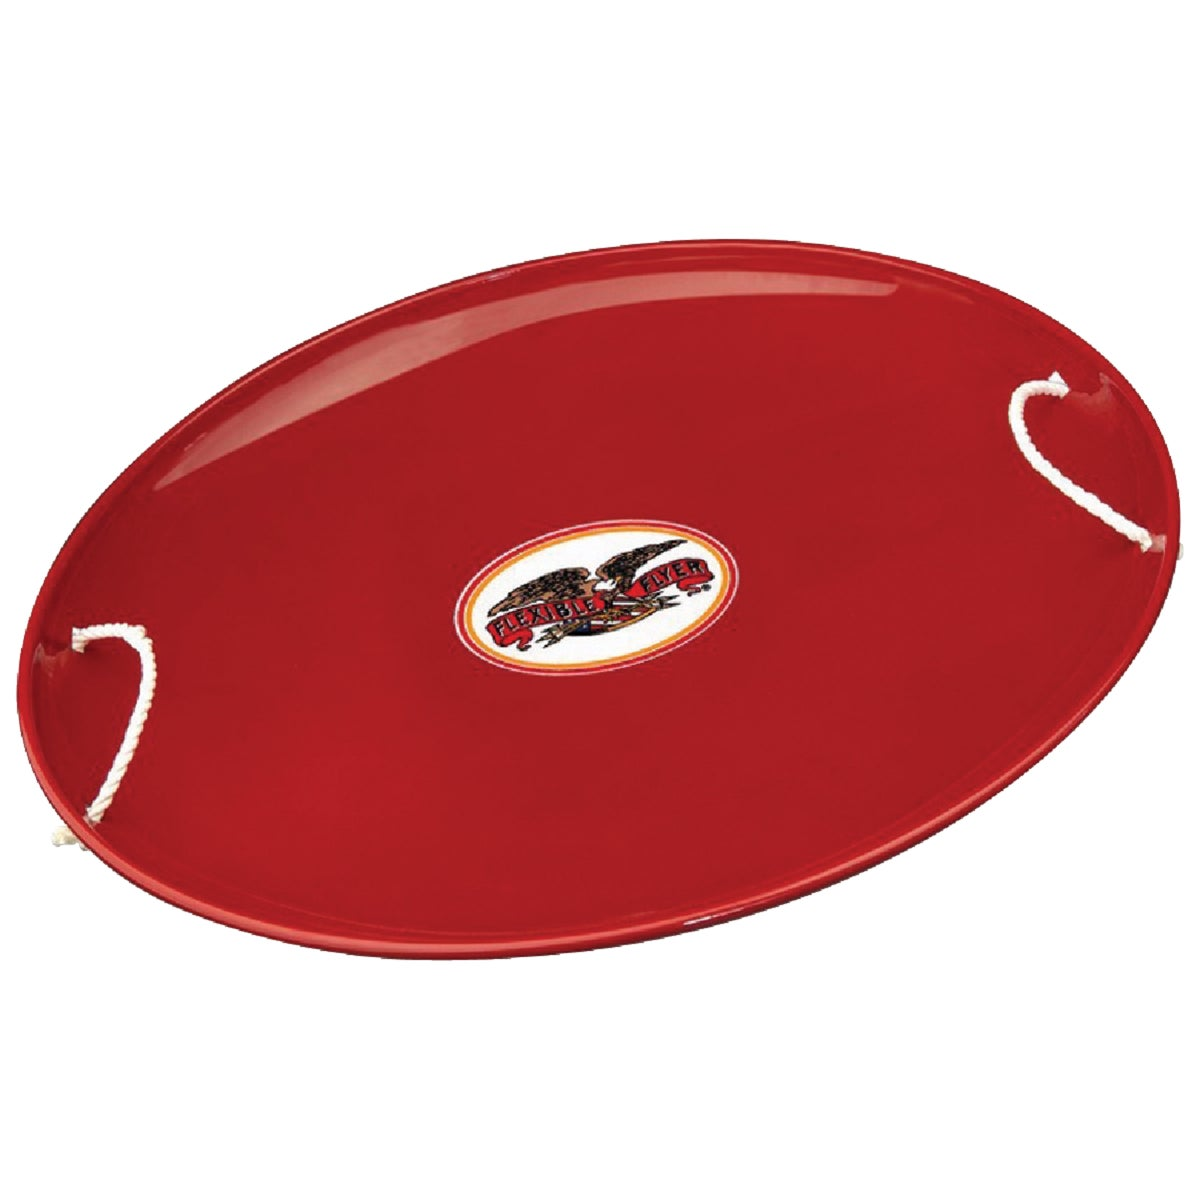 "RED 26"" STEEL SAUCER - 826 by Paricon Inc"